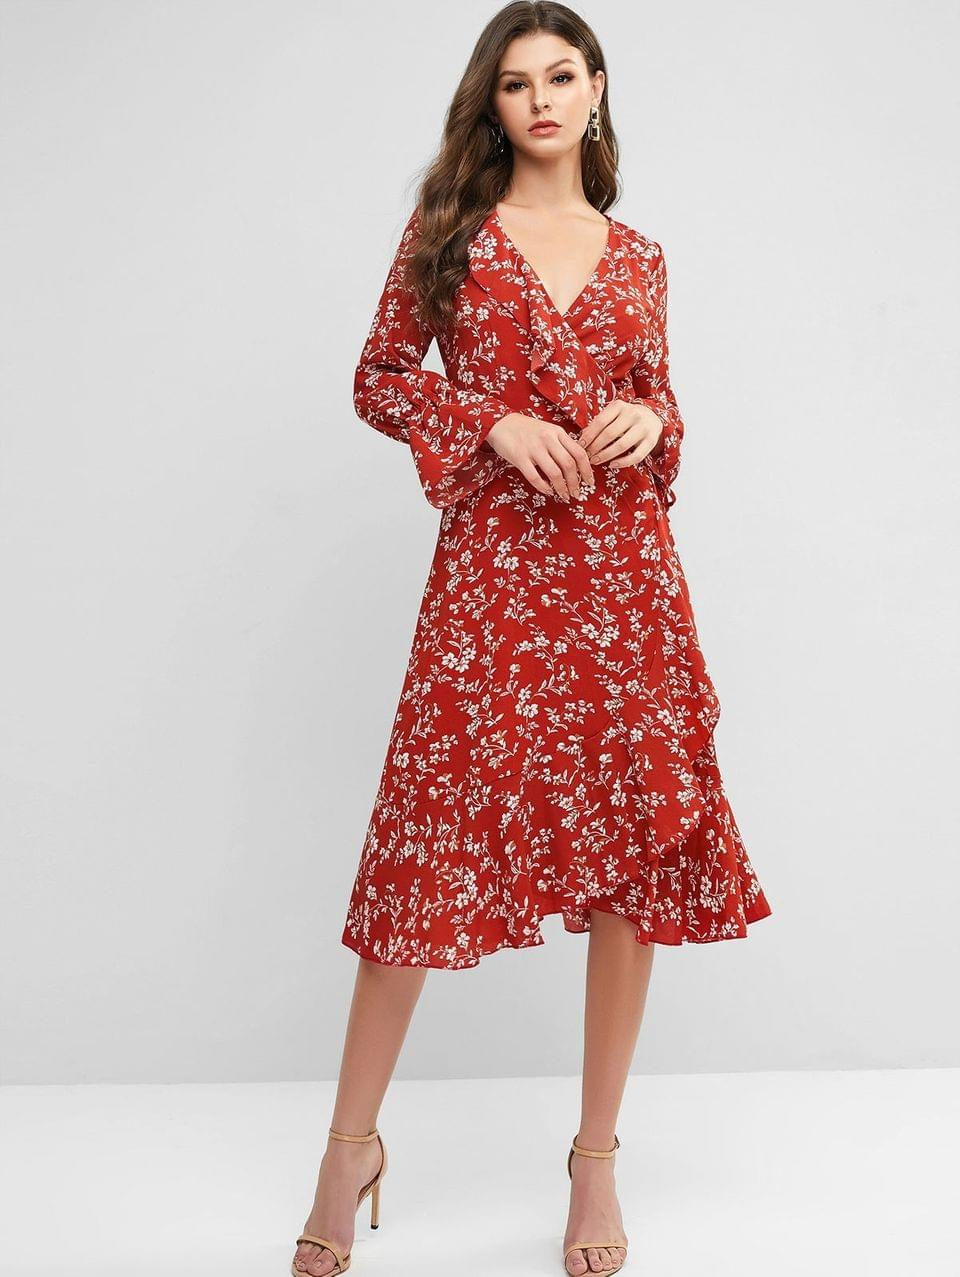 Women's Poet Sleeve Ditsy Floral Ruffles Wrap Dress - Valentine Red L